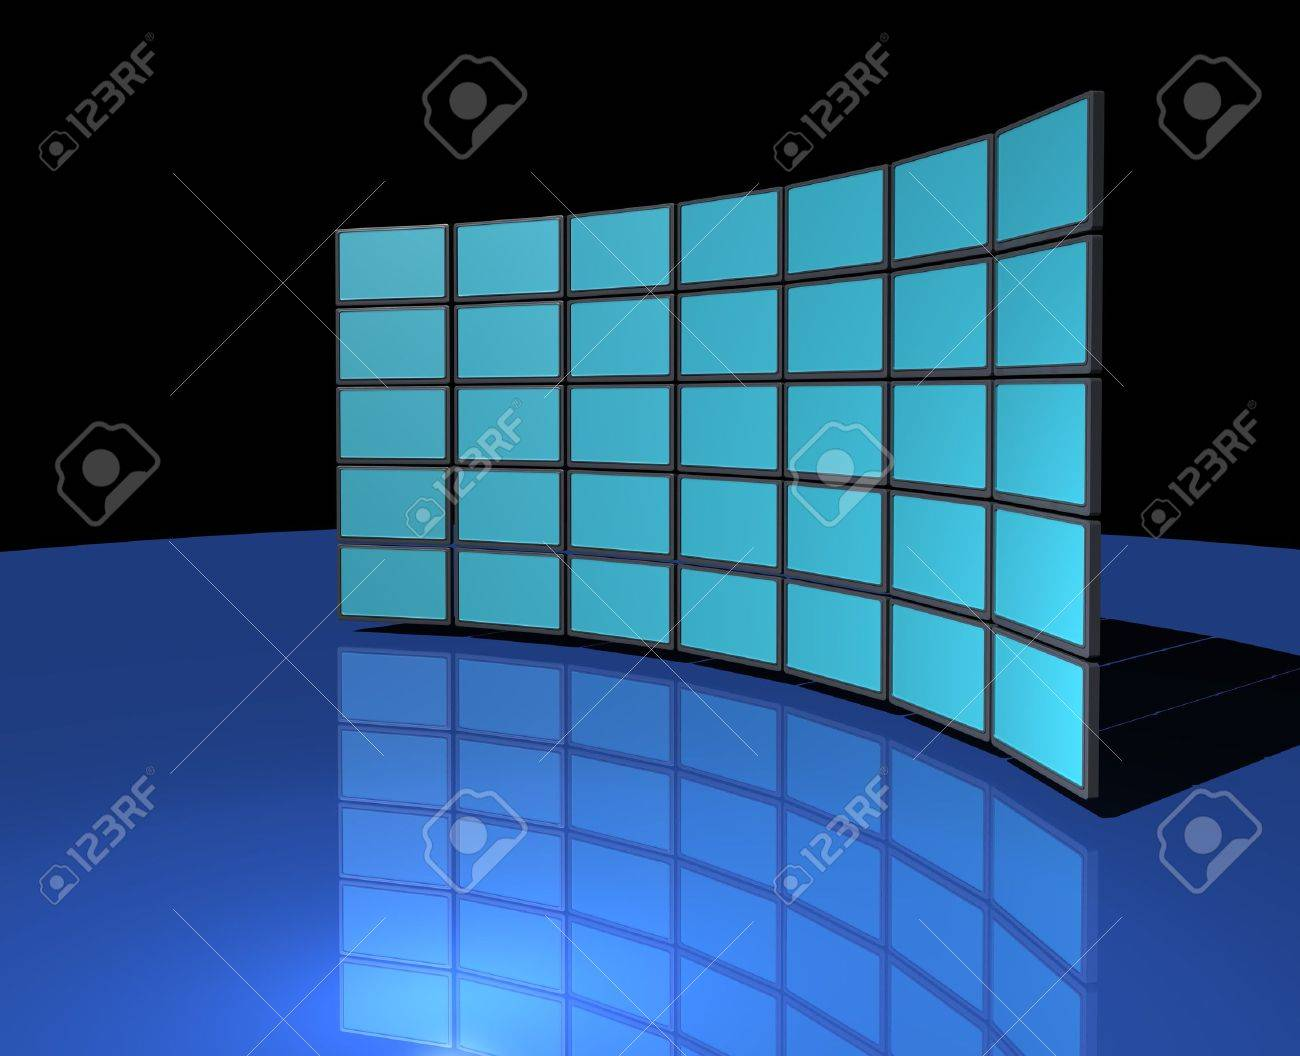 Background image 7945 - Stock Photo Widescreen Monitor Display Wall On Dark Blue Reflective Background